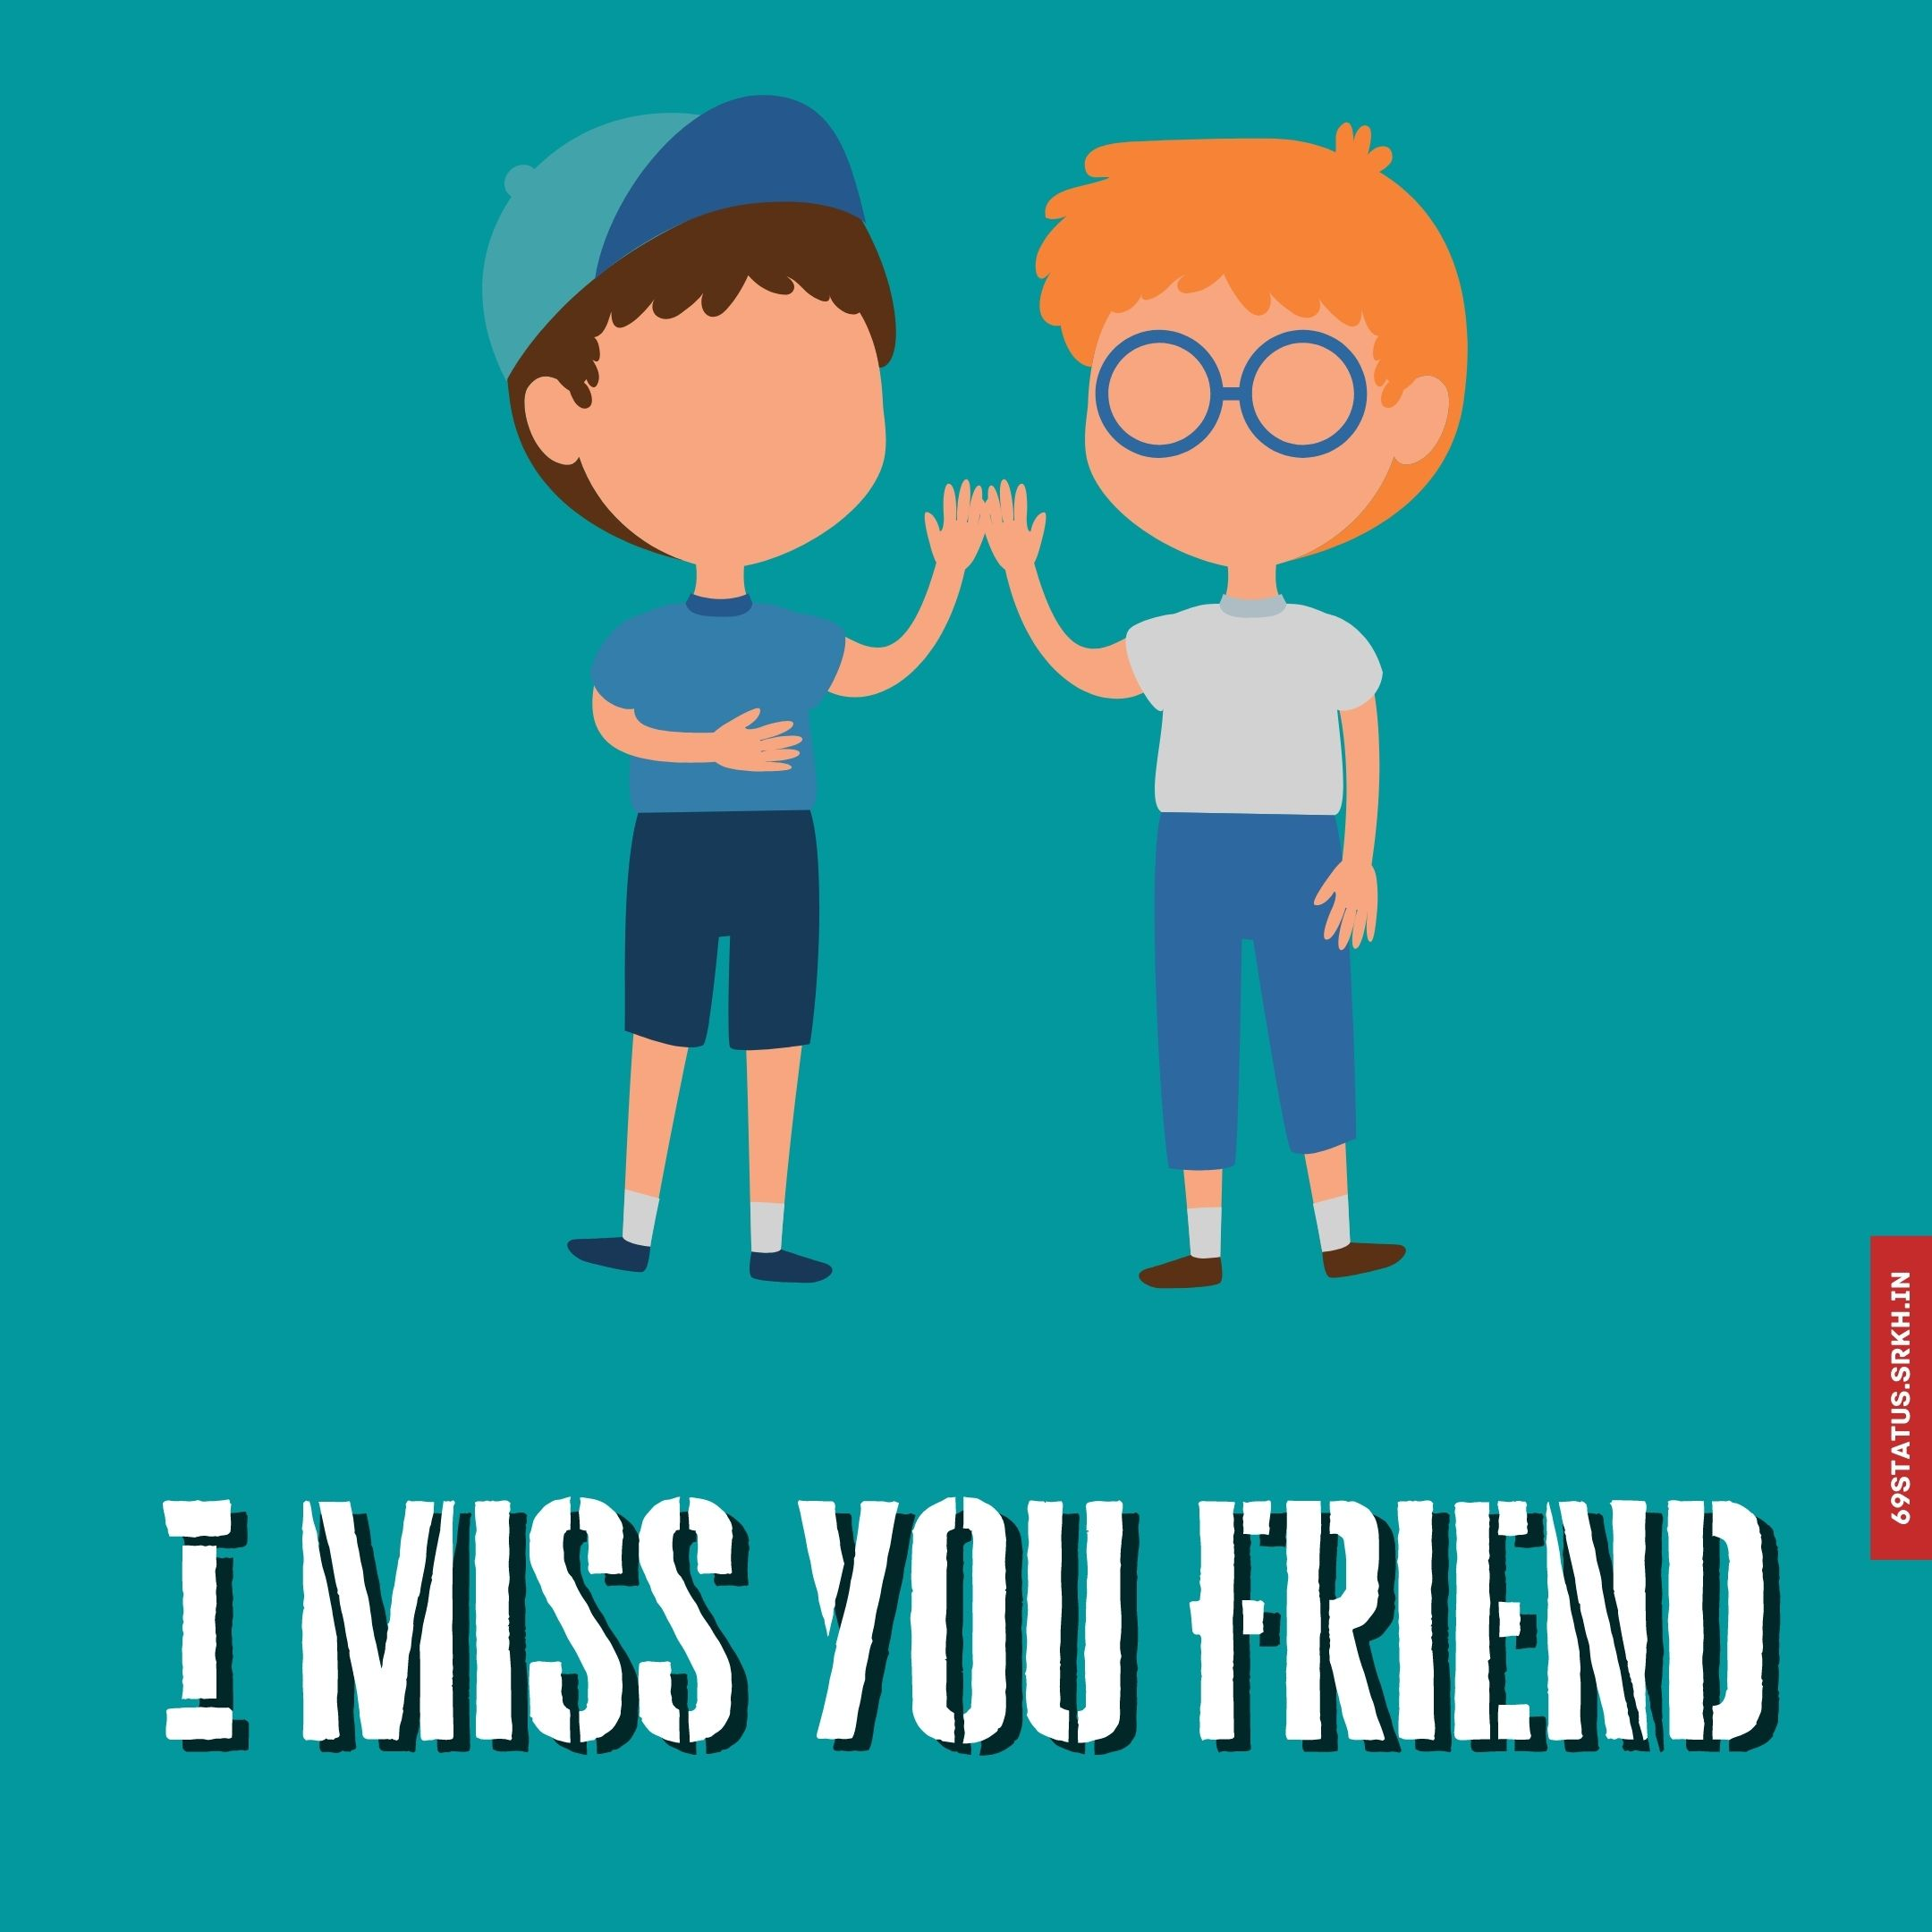 Miss you my friend images full HD free download.